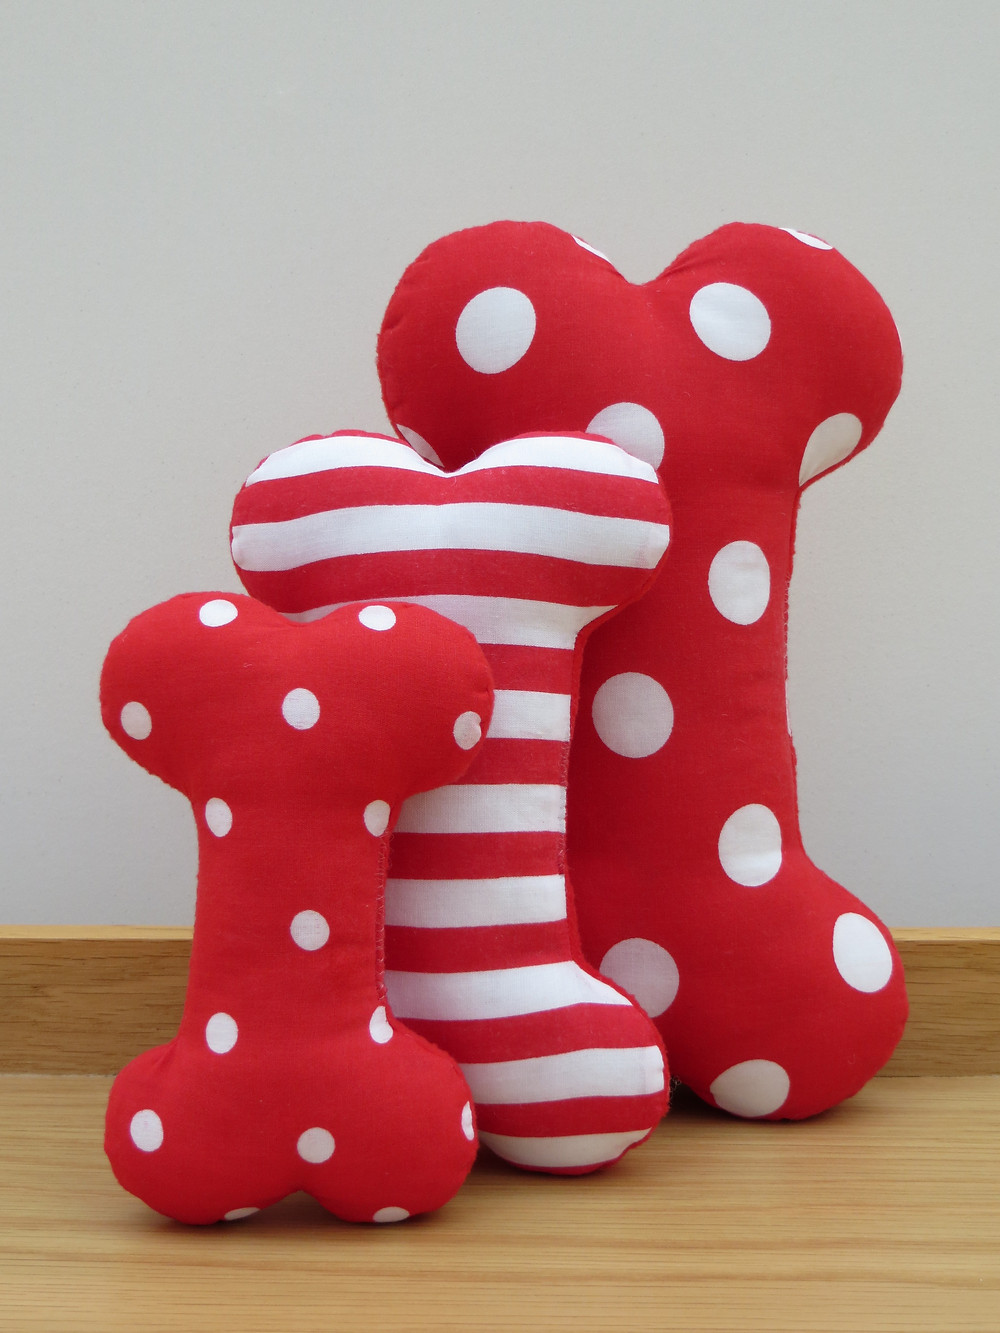 a set of three dog toy bones in red and white fabric with spots and stripes designs